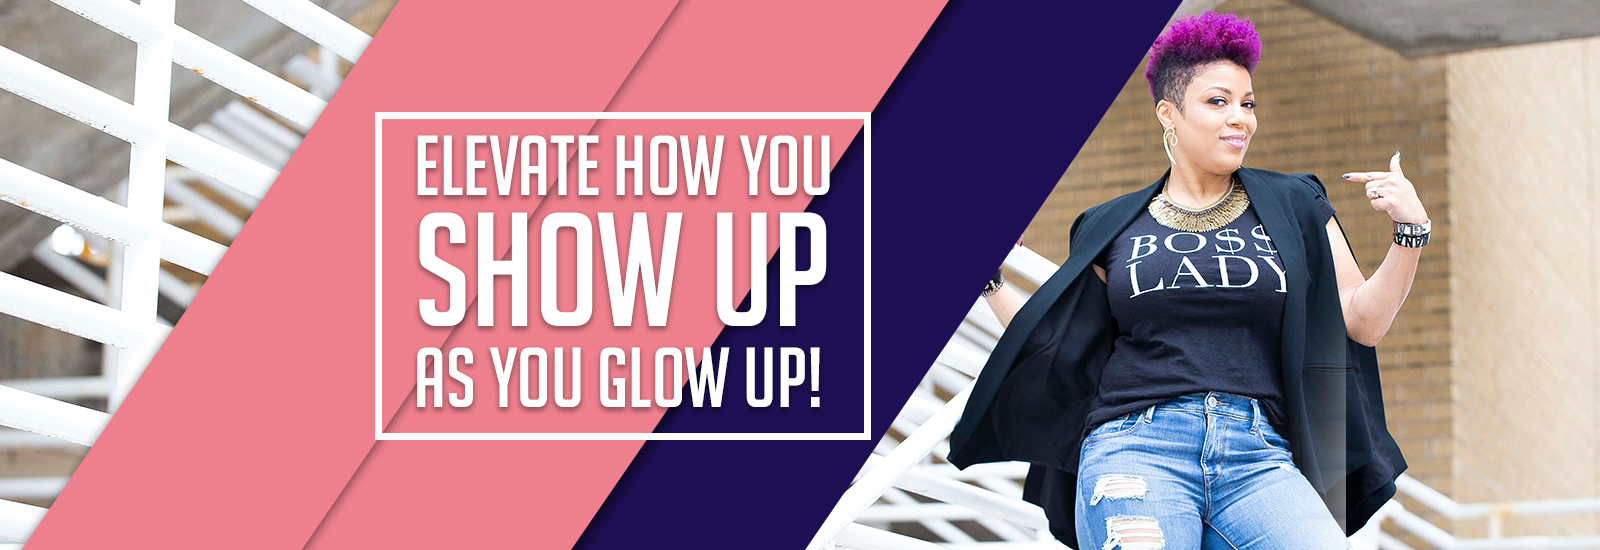 Elevate How You Show Up As You Glow Up